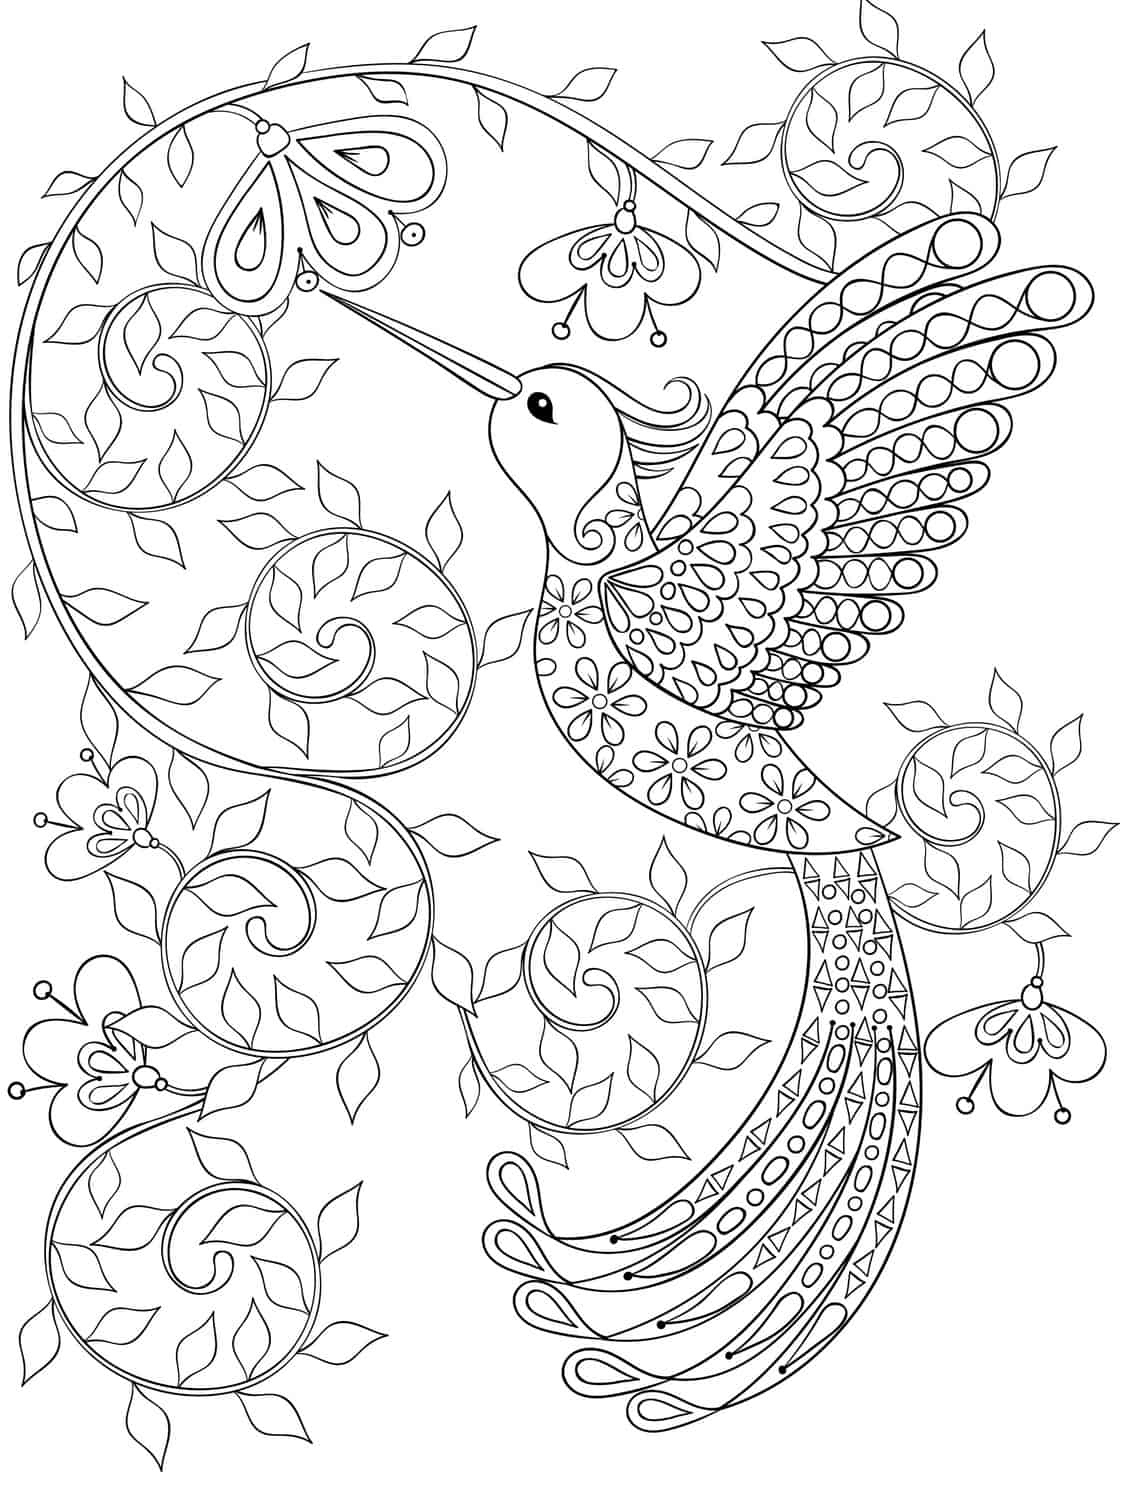 20 Gorgeous Free Printable Adult Coloring Pages Page 11 Coloring Pages For Adults Bird